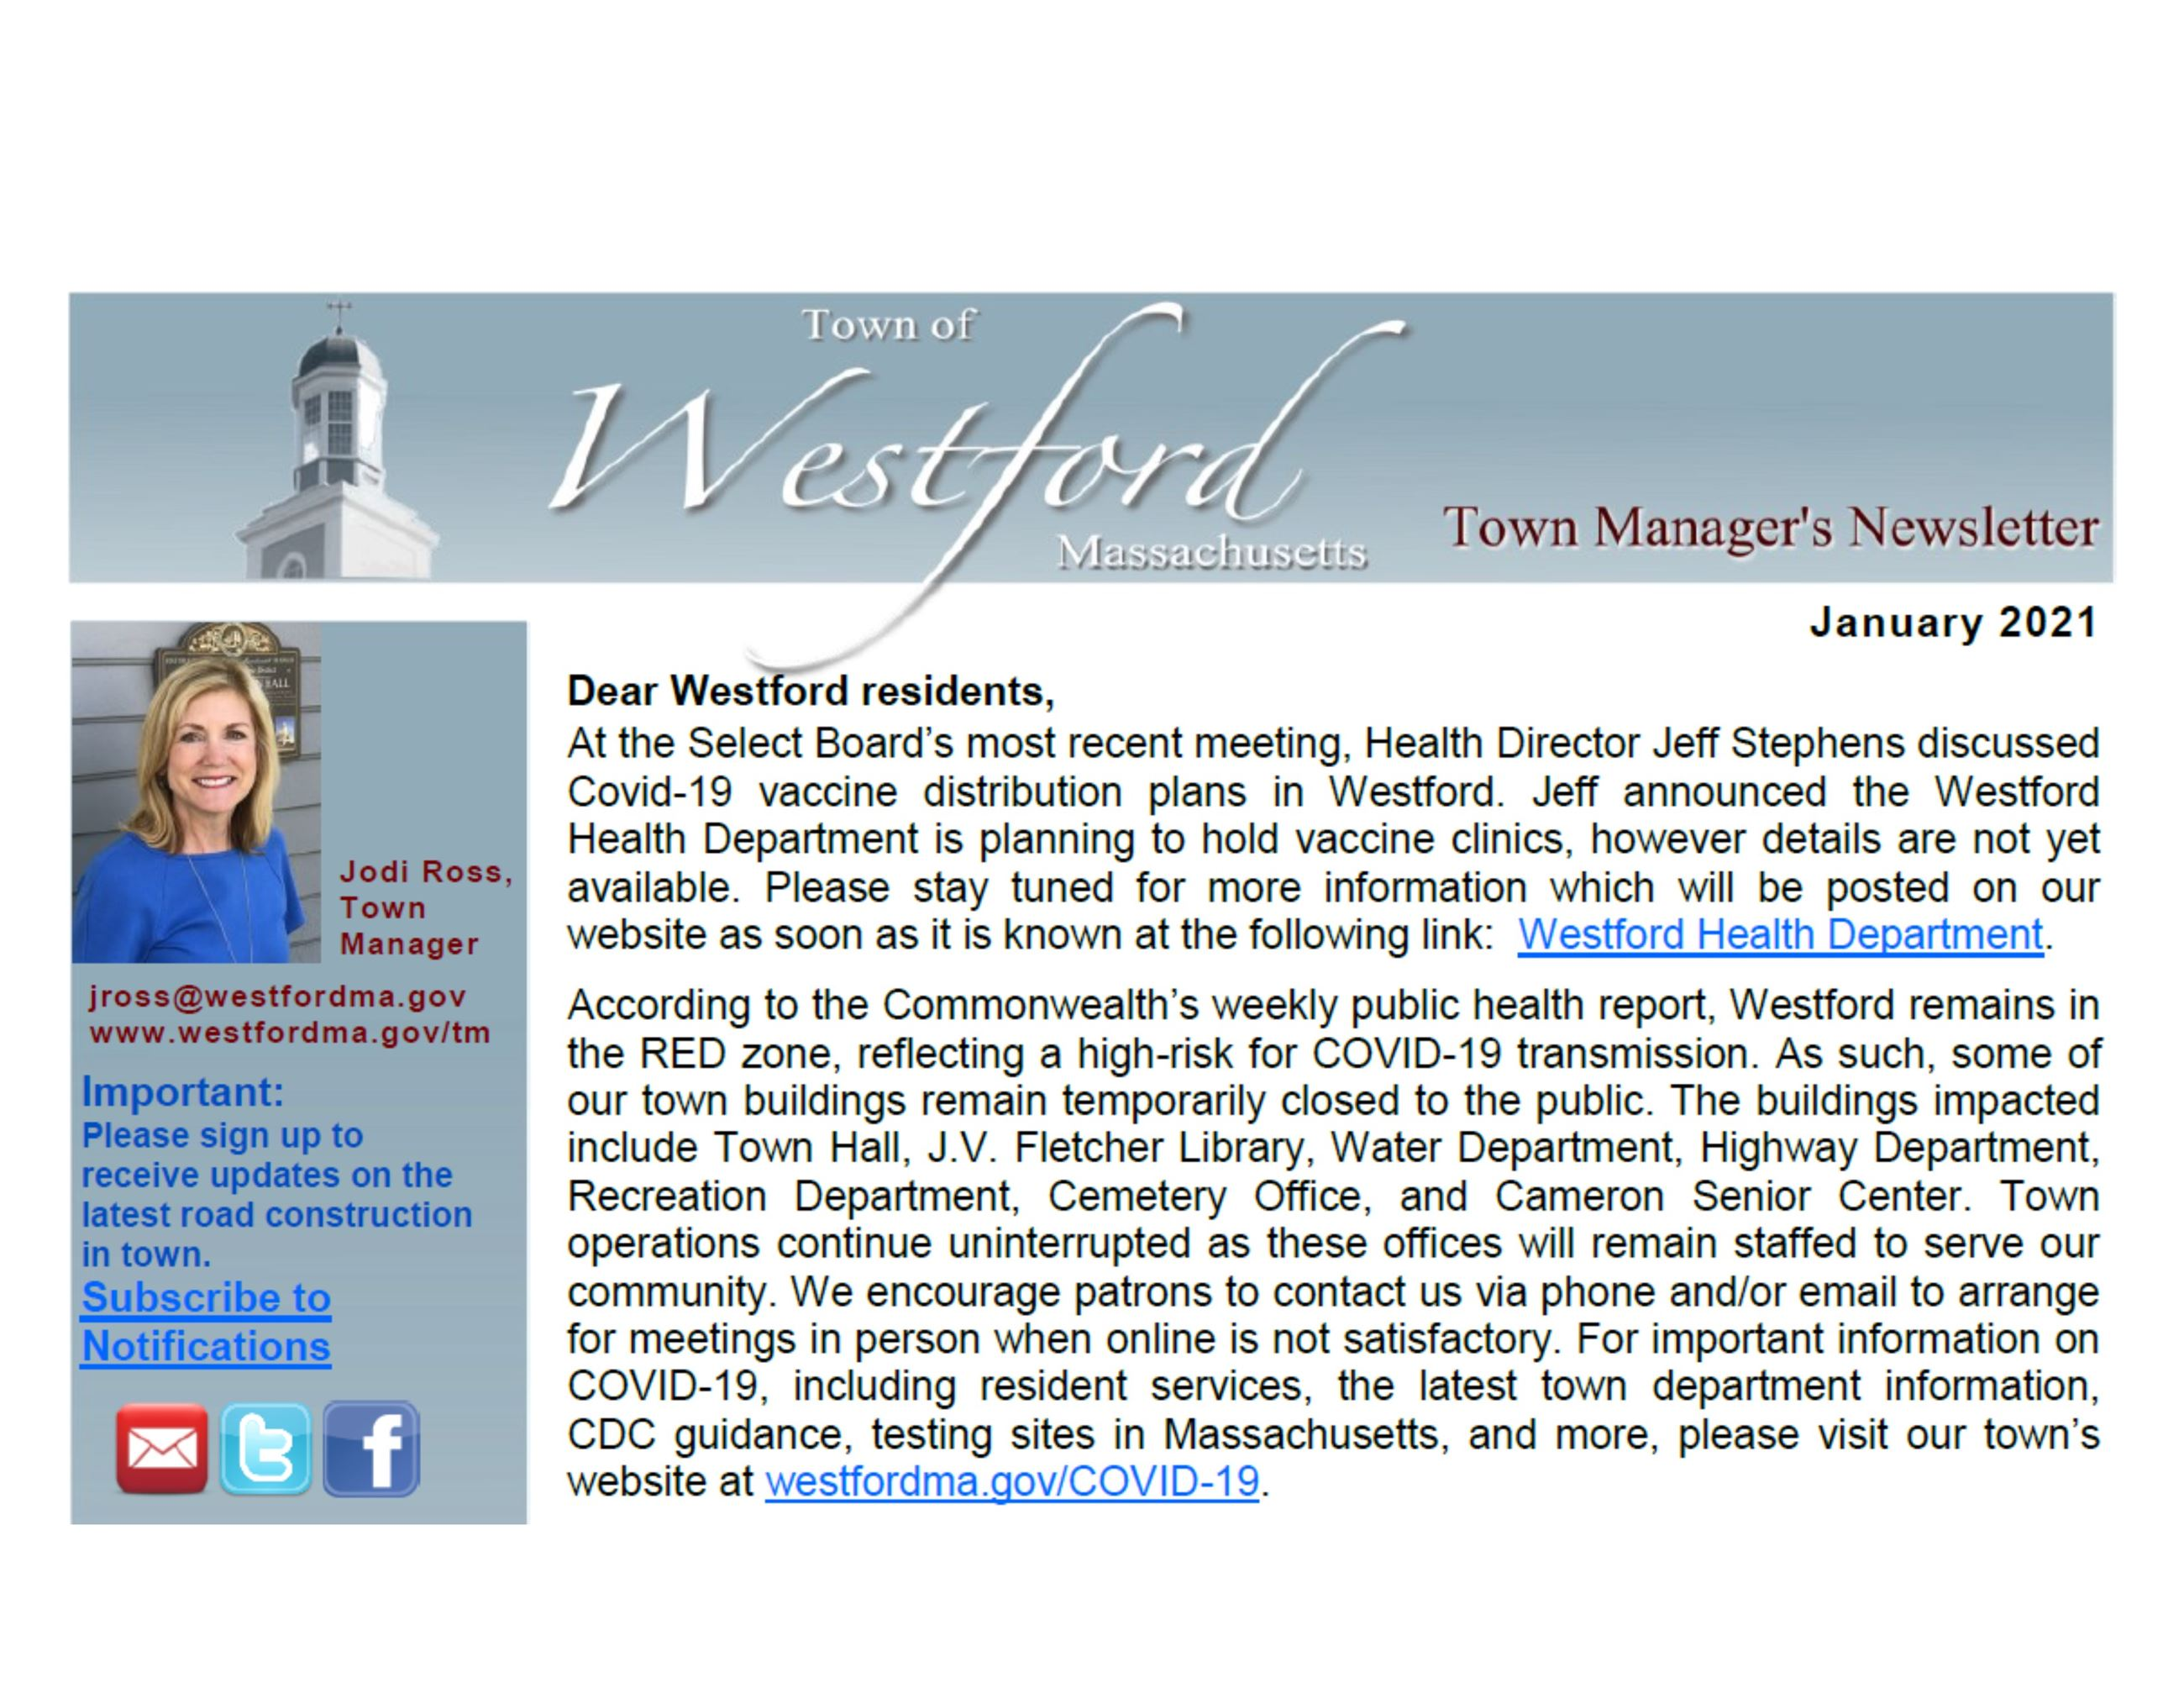 Westford Town Manager's January 2021 Newsletter